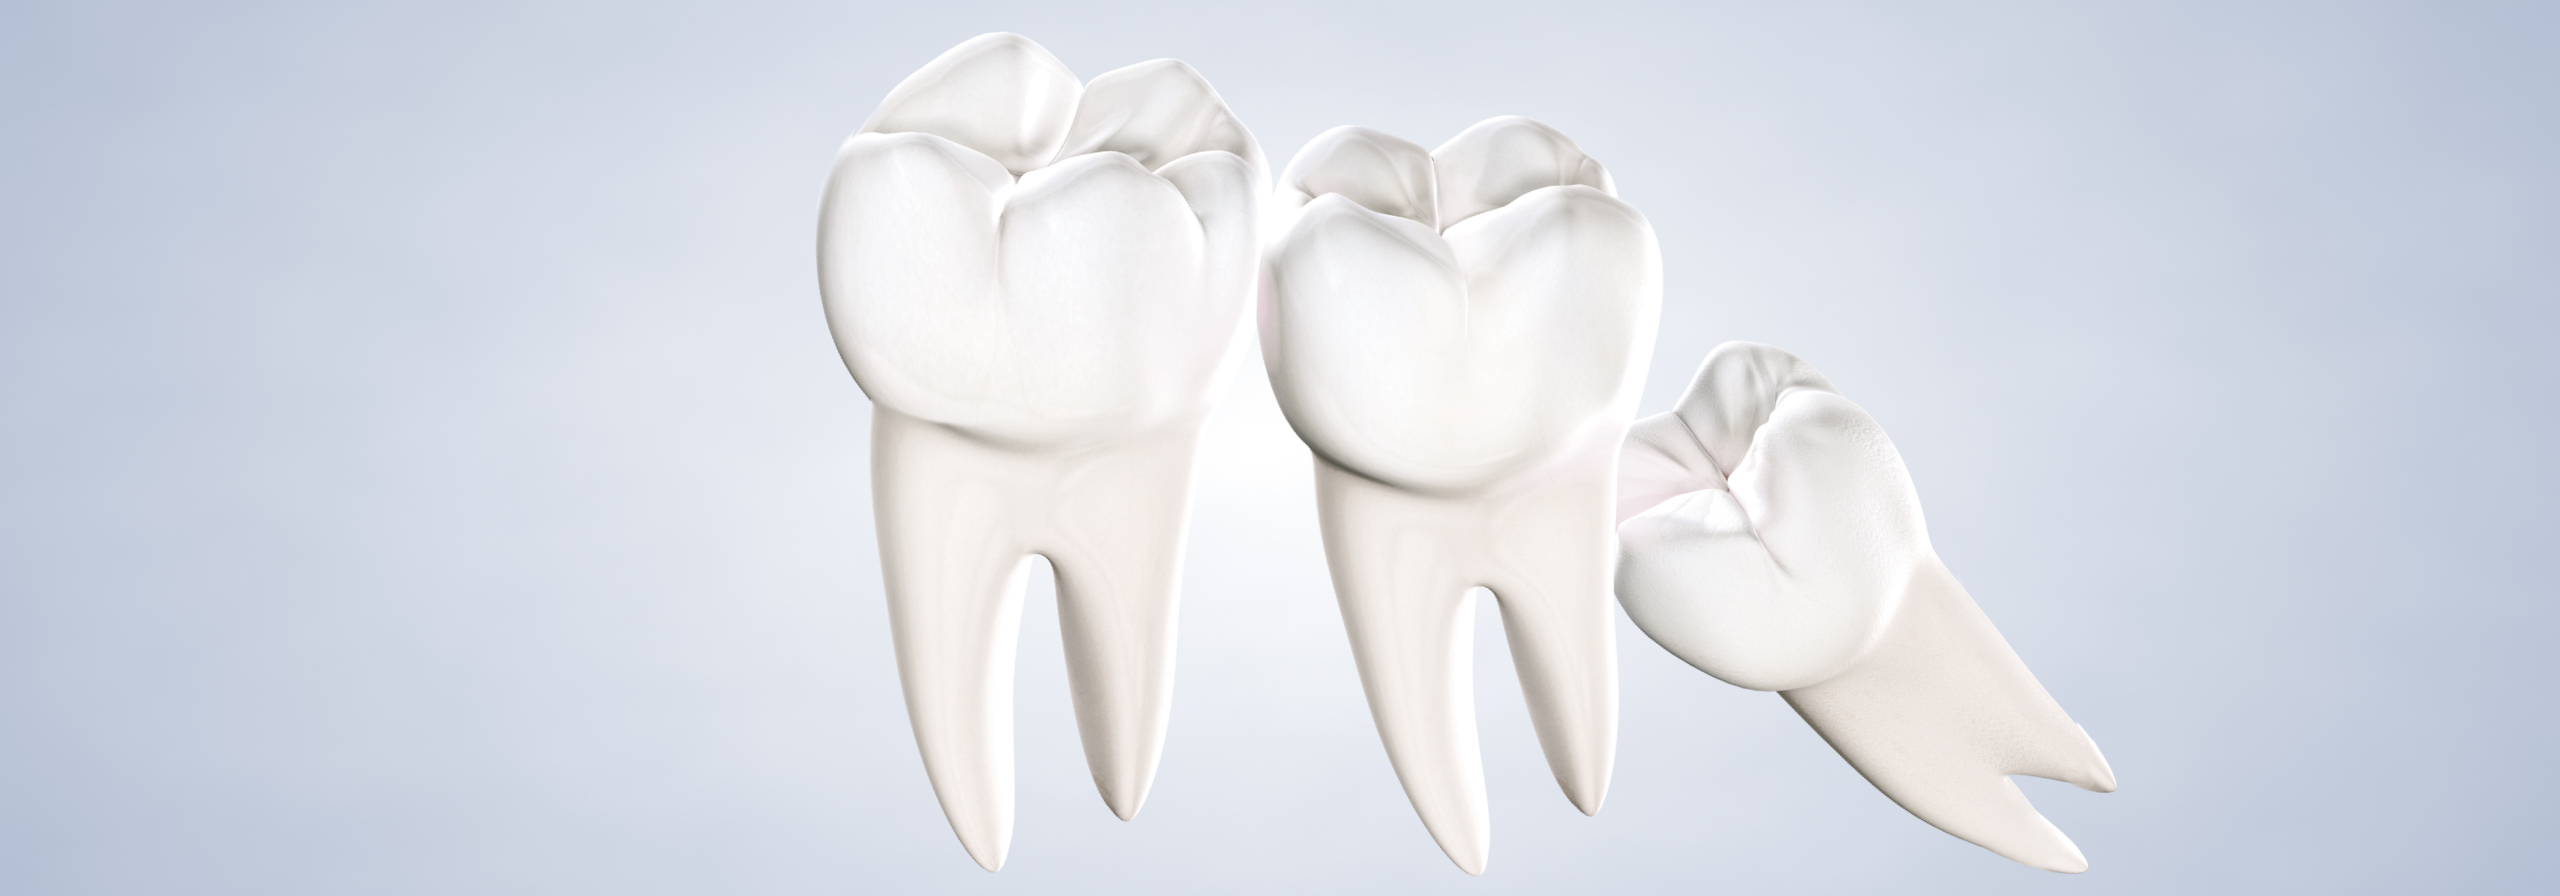 Why You Should See an Oral Surgeon to Remove Wisdom Teeth